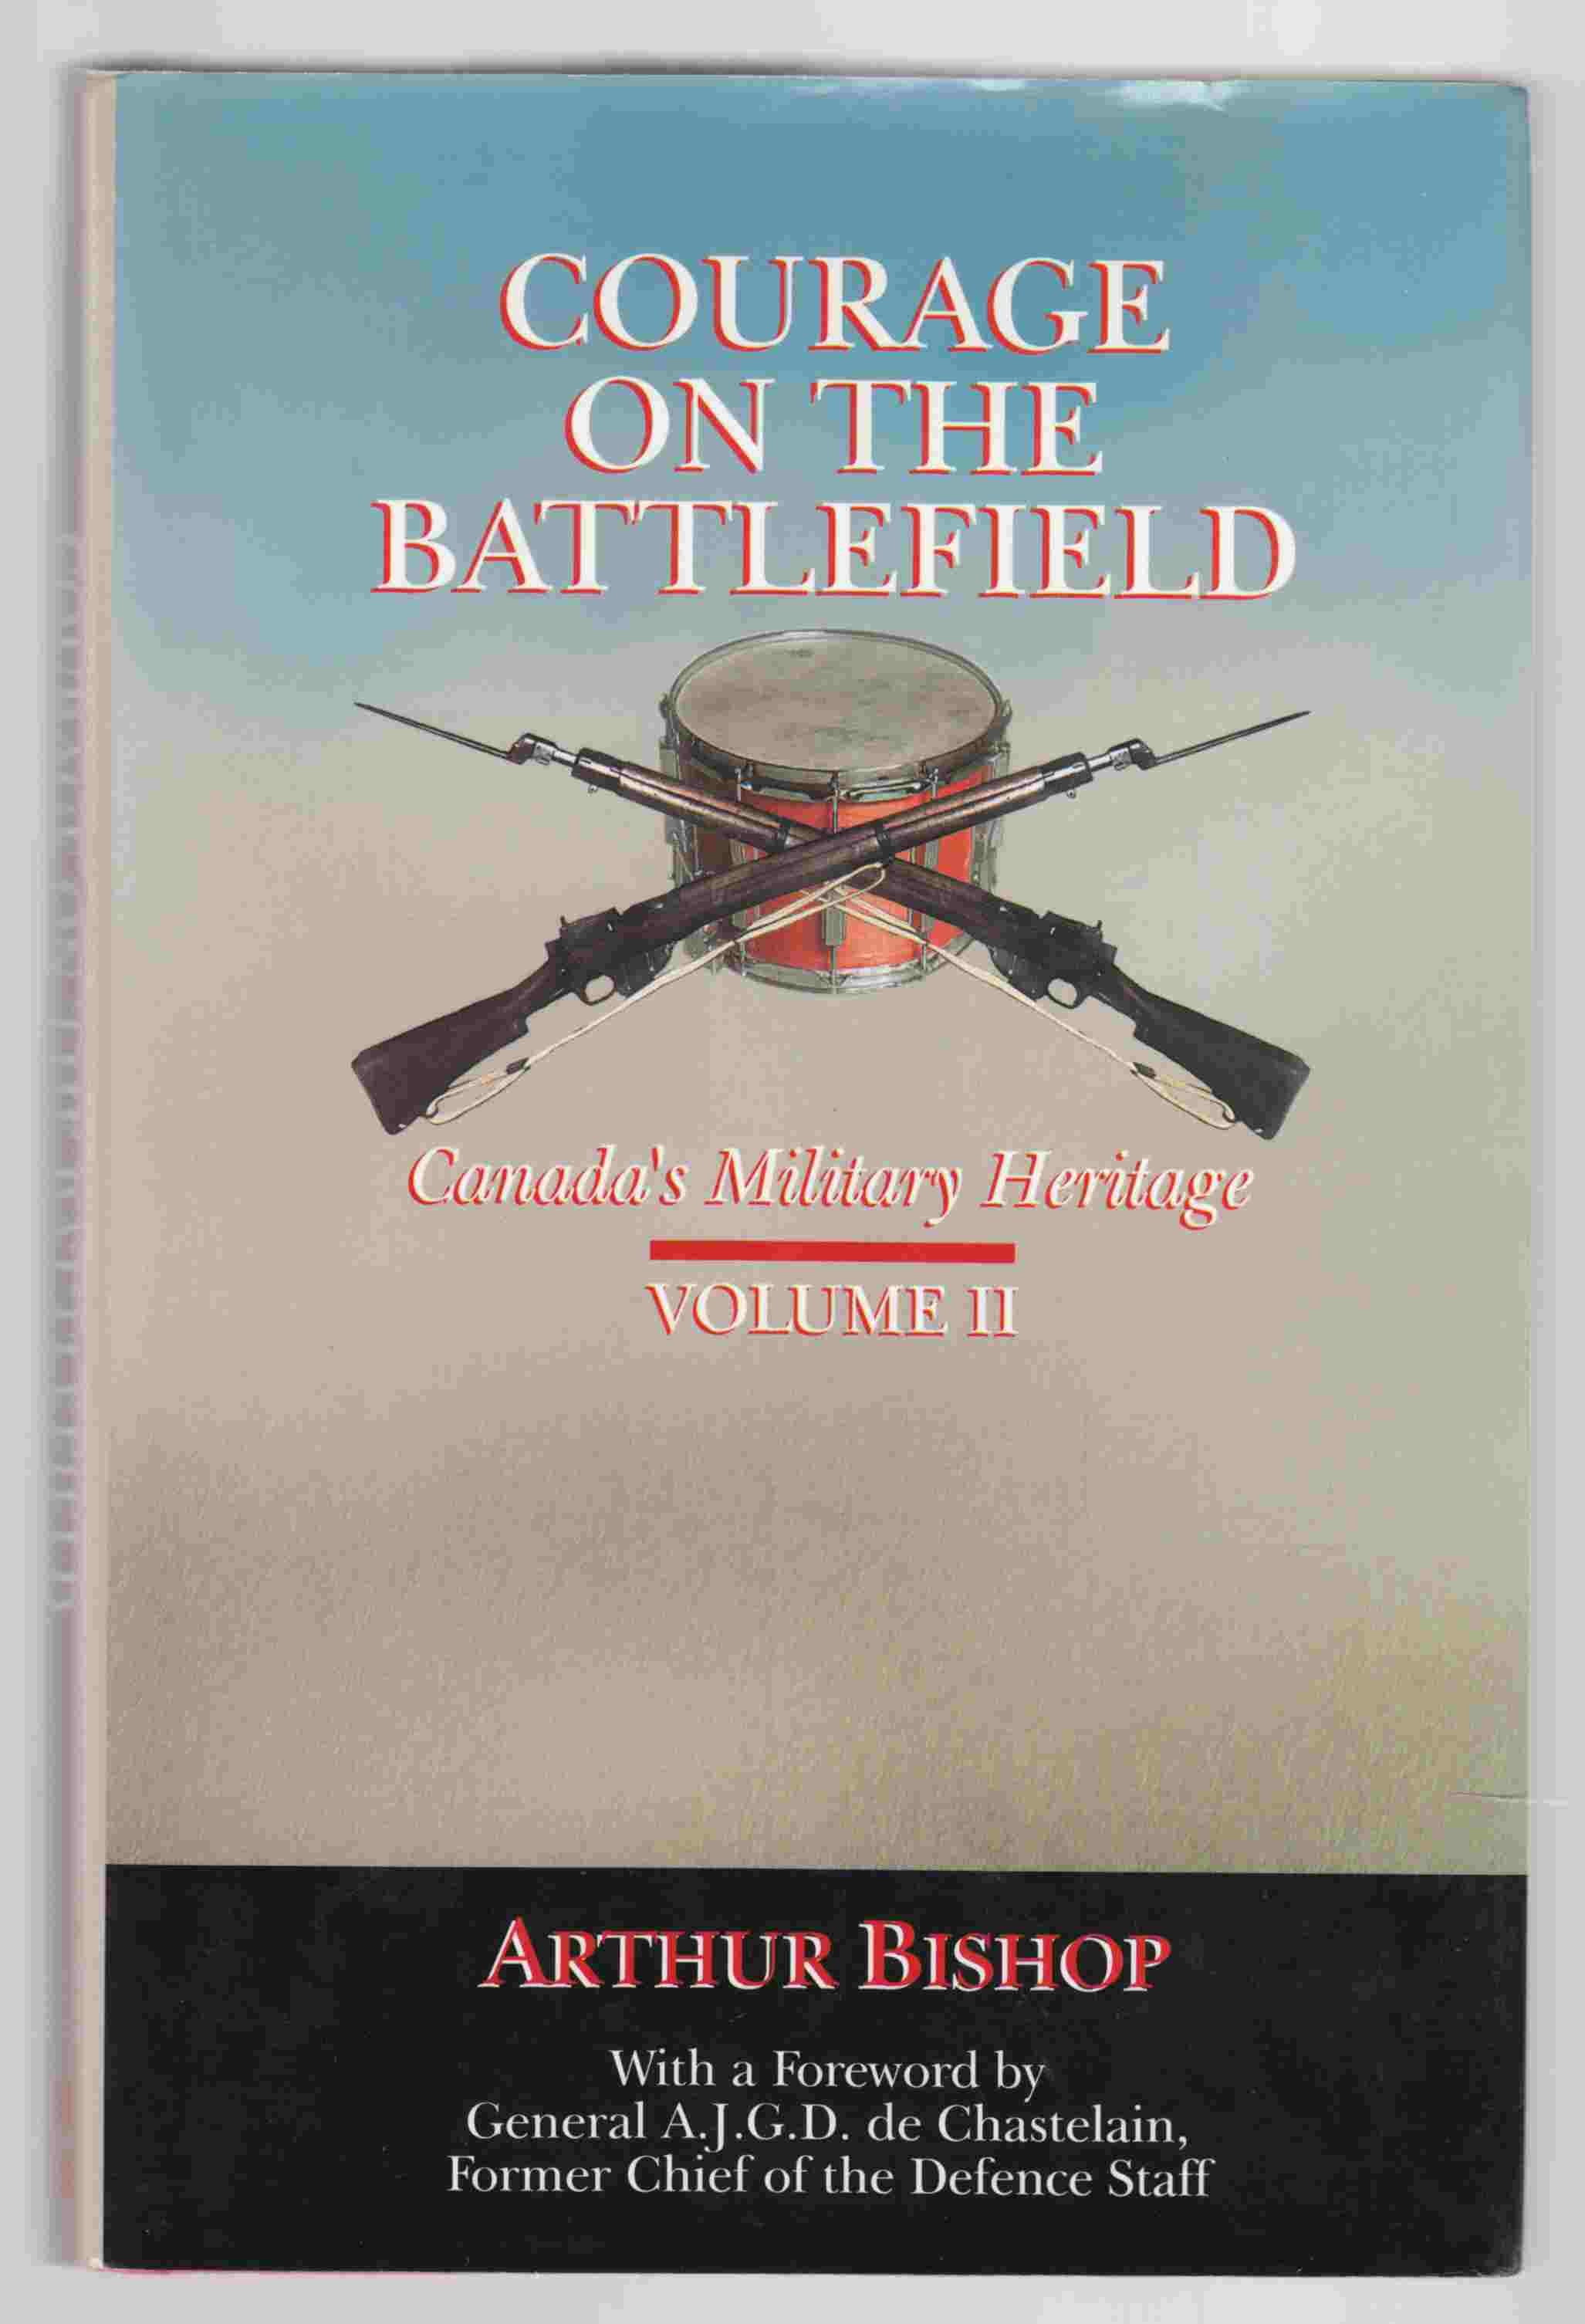 Image for Courage on the Battlefield: Volume II Canada's Military Heritage